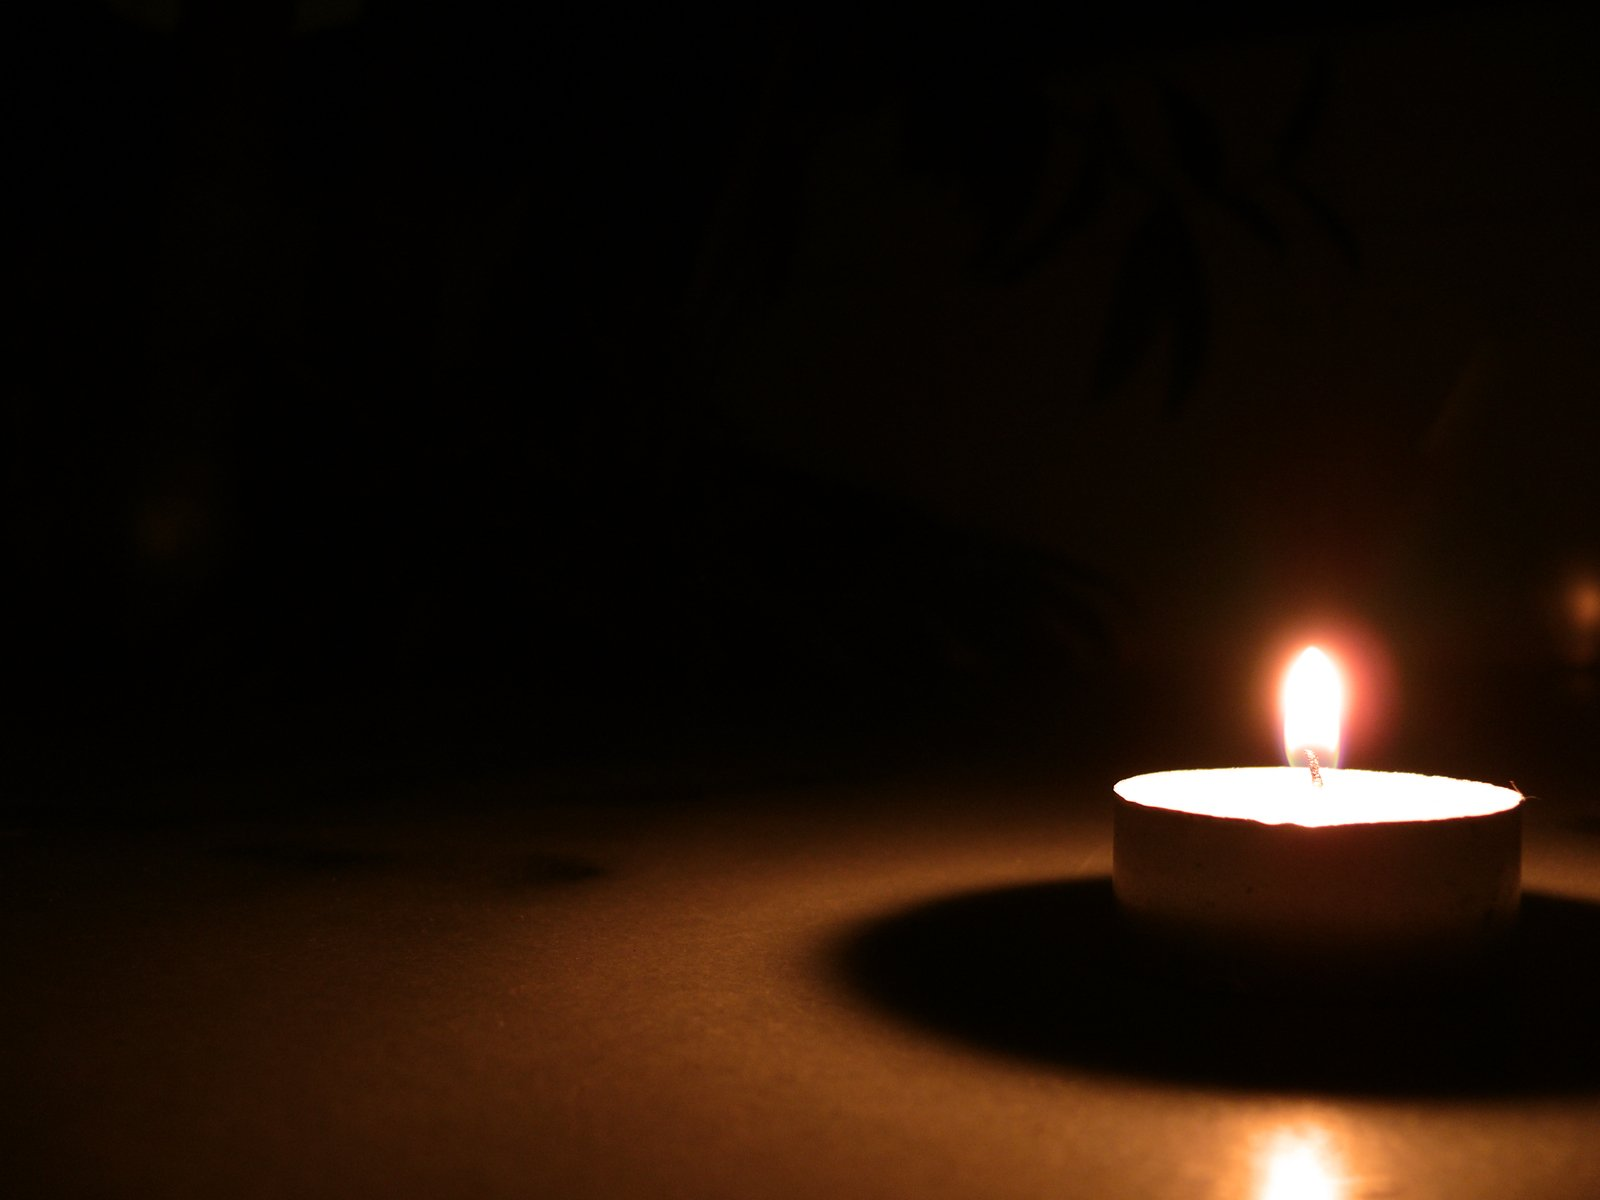 Free Candle Light Stock Photo - FreeImages.com